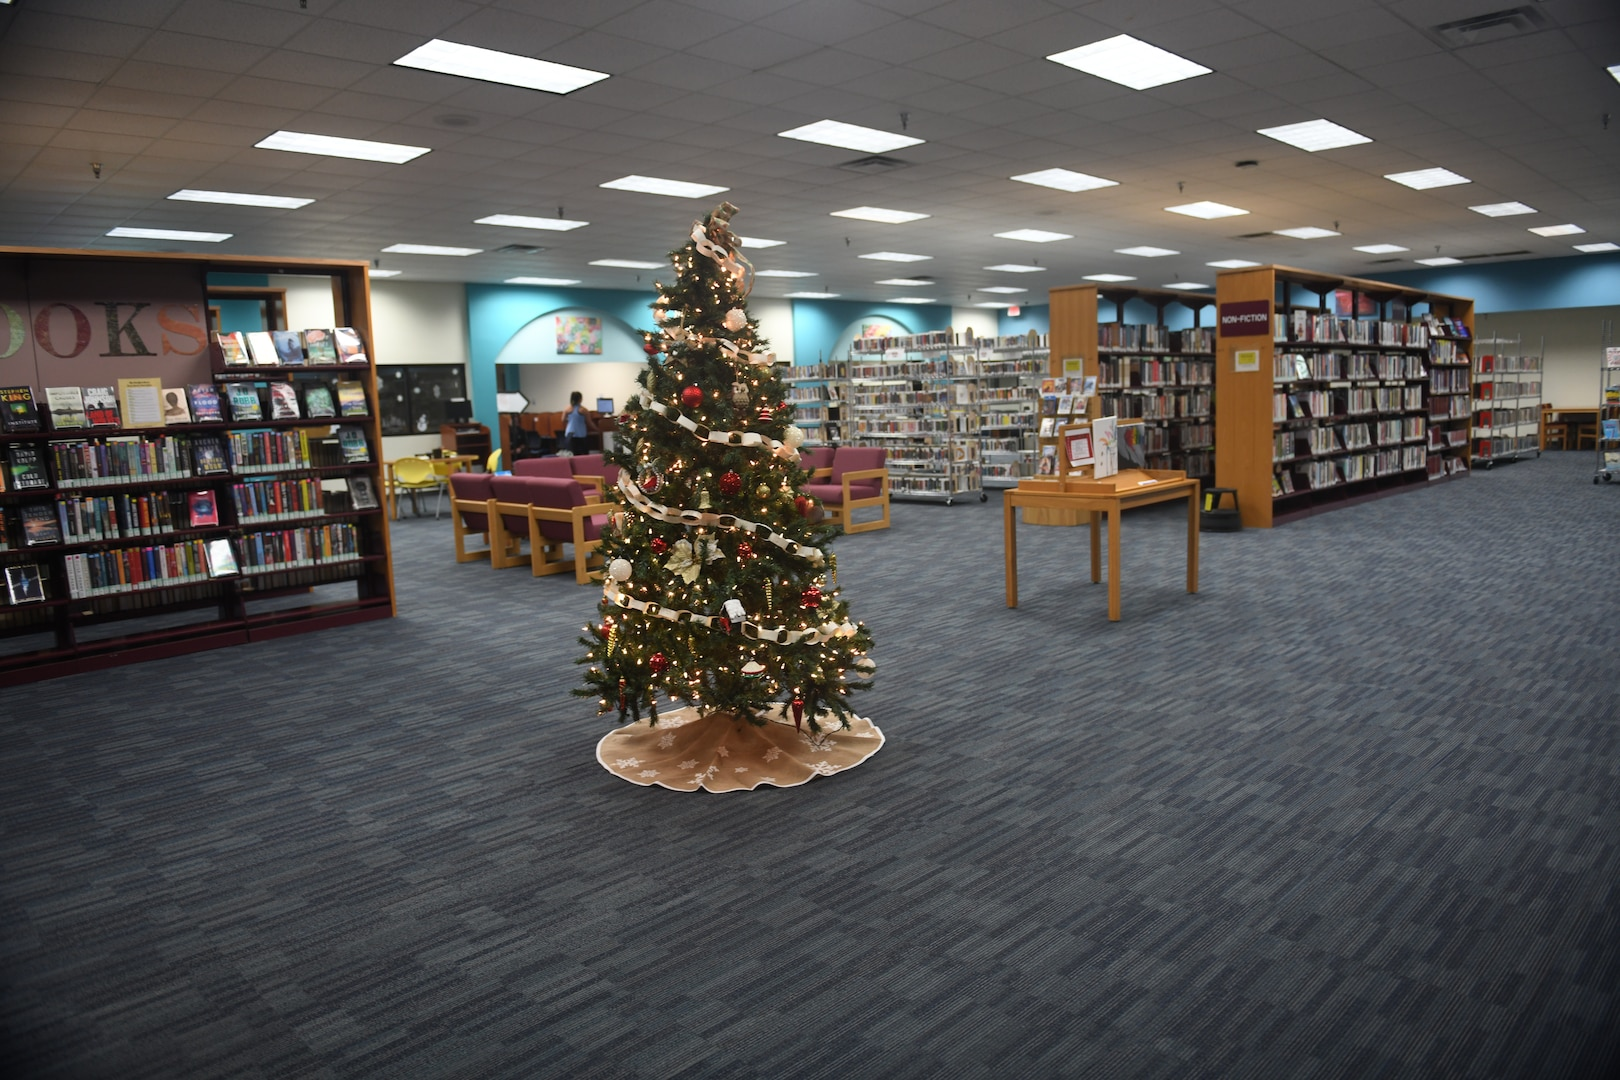 """A view of the main area from the entrance of the library at Joint Base San Antonio-Randolph, Texas, Dec. 5, 2019. """"We'll be getting new sofas, chairs, tables and study carrels in addition to new shelving,"""" said Diana Lisenbee, supervisory librarian. """"It's a way to refresh our space. We want to make sure everything is done right."""""""